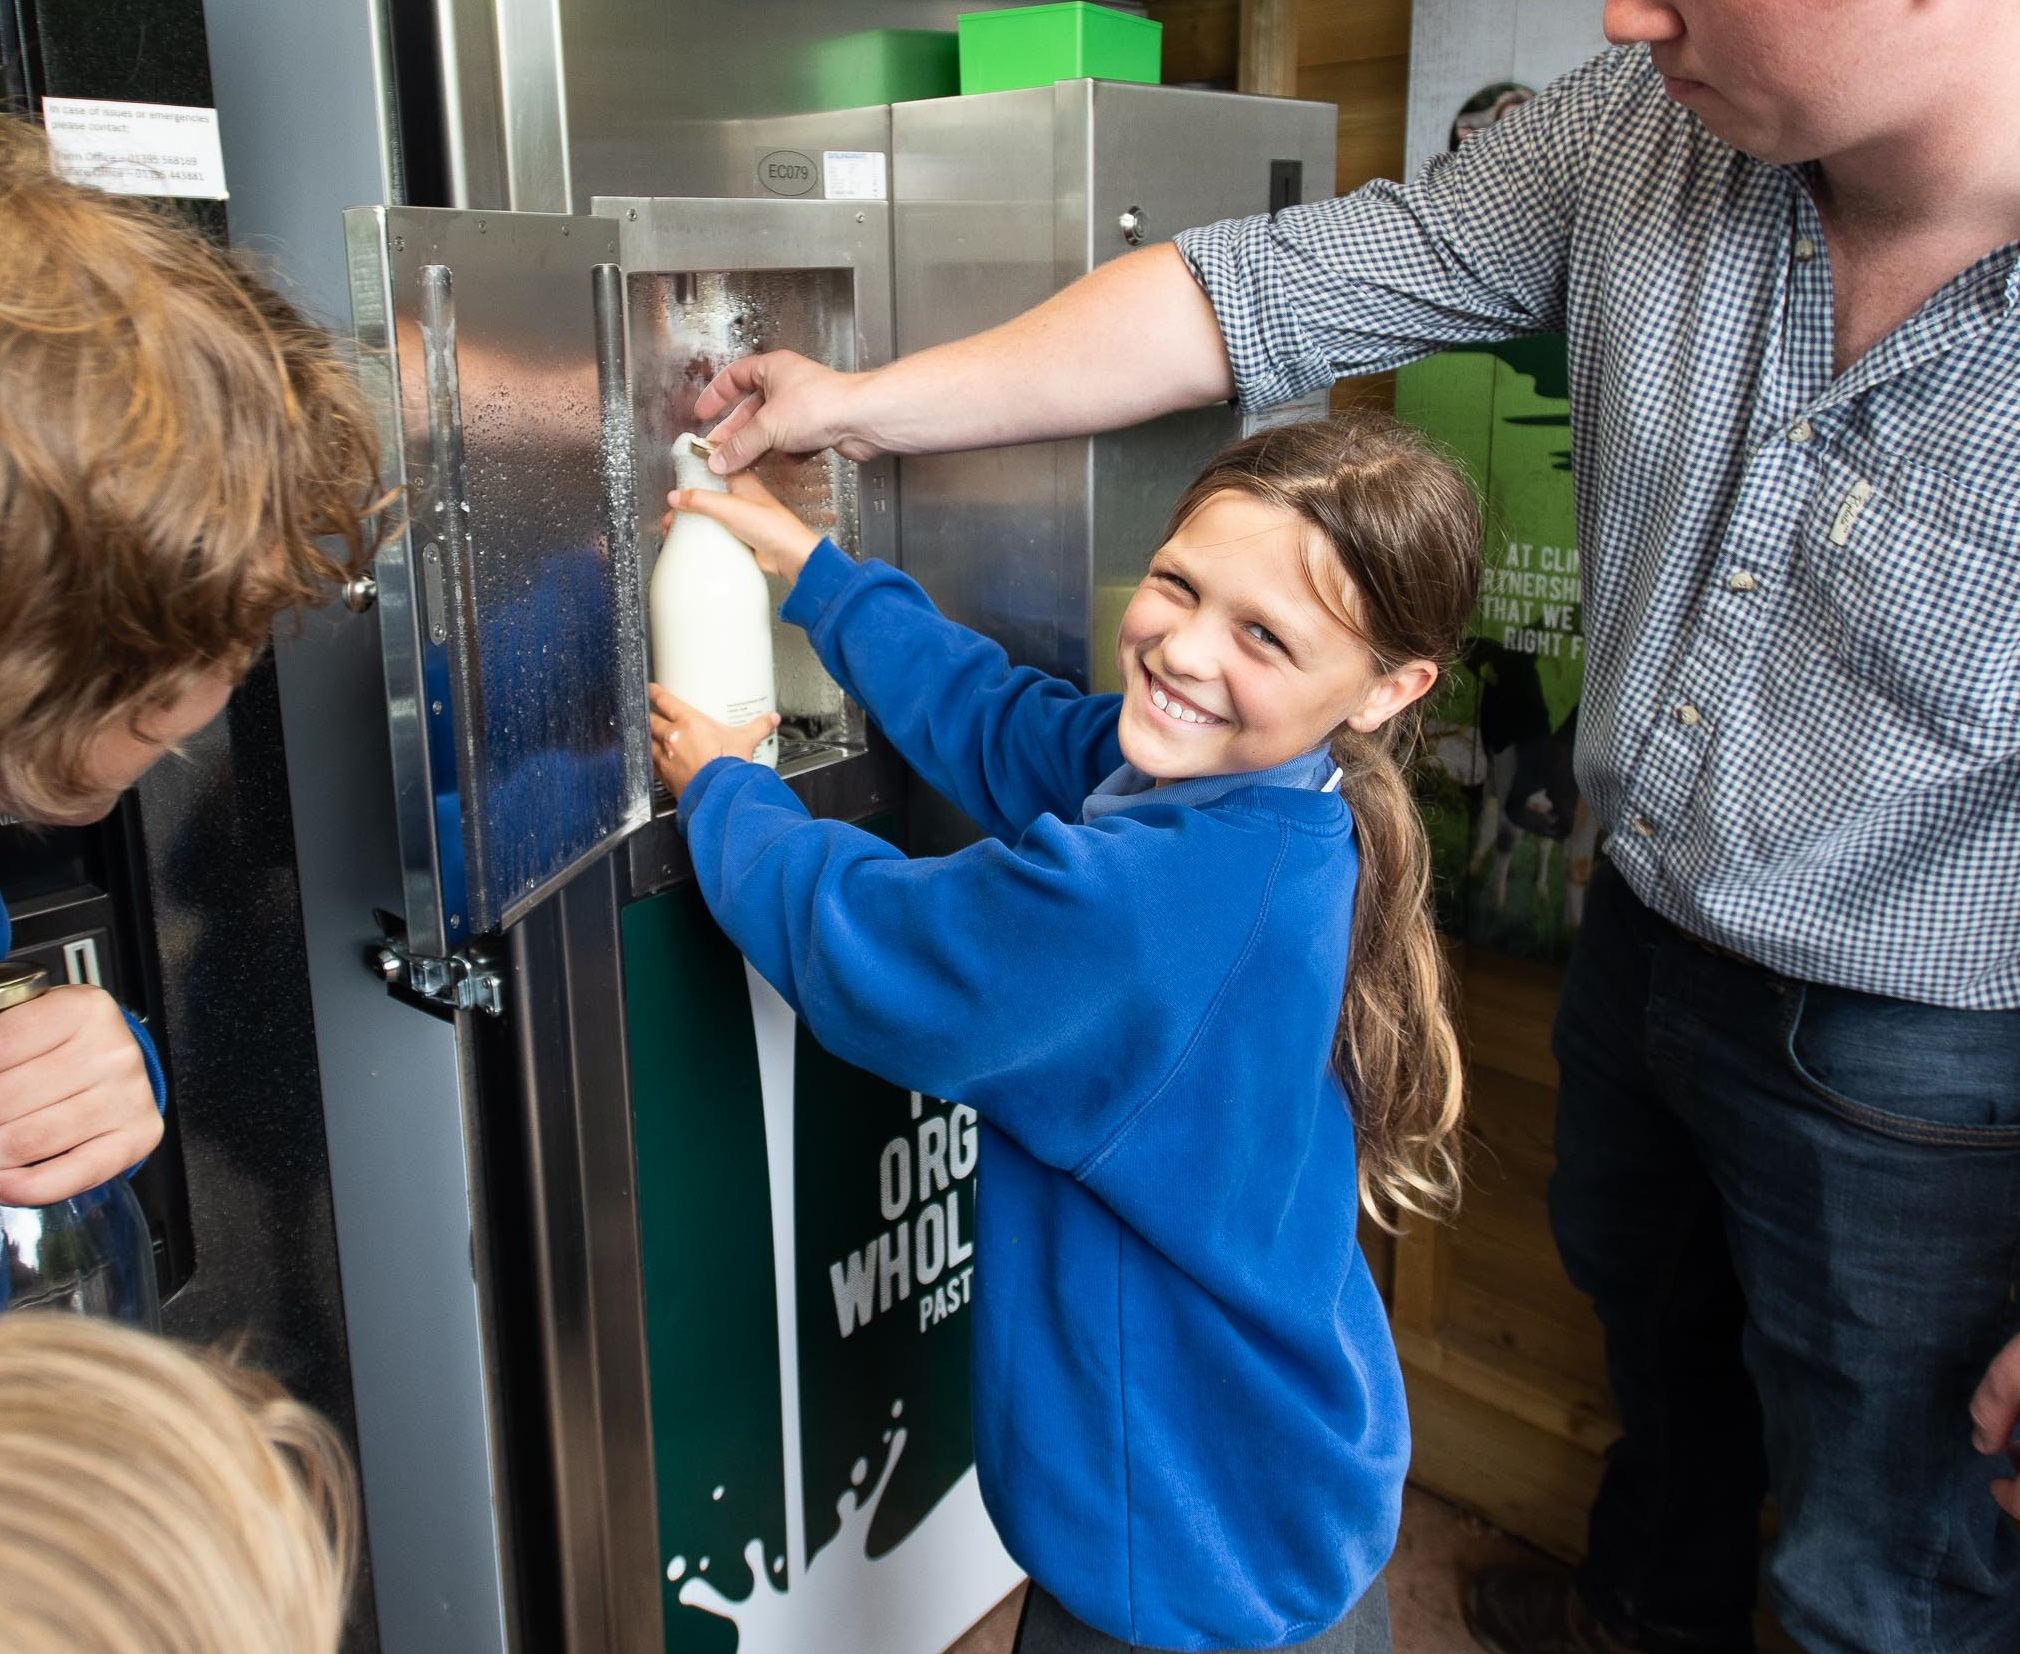 The milk vending machine aims to bridge the gap between cows and consumers